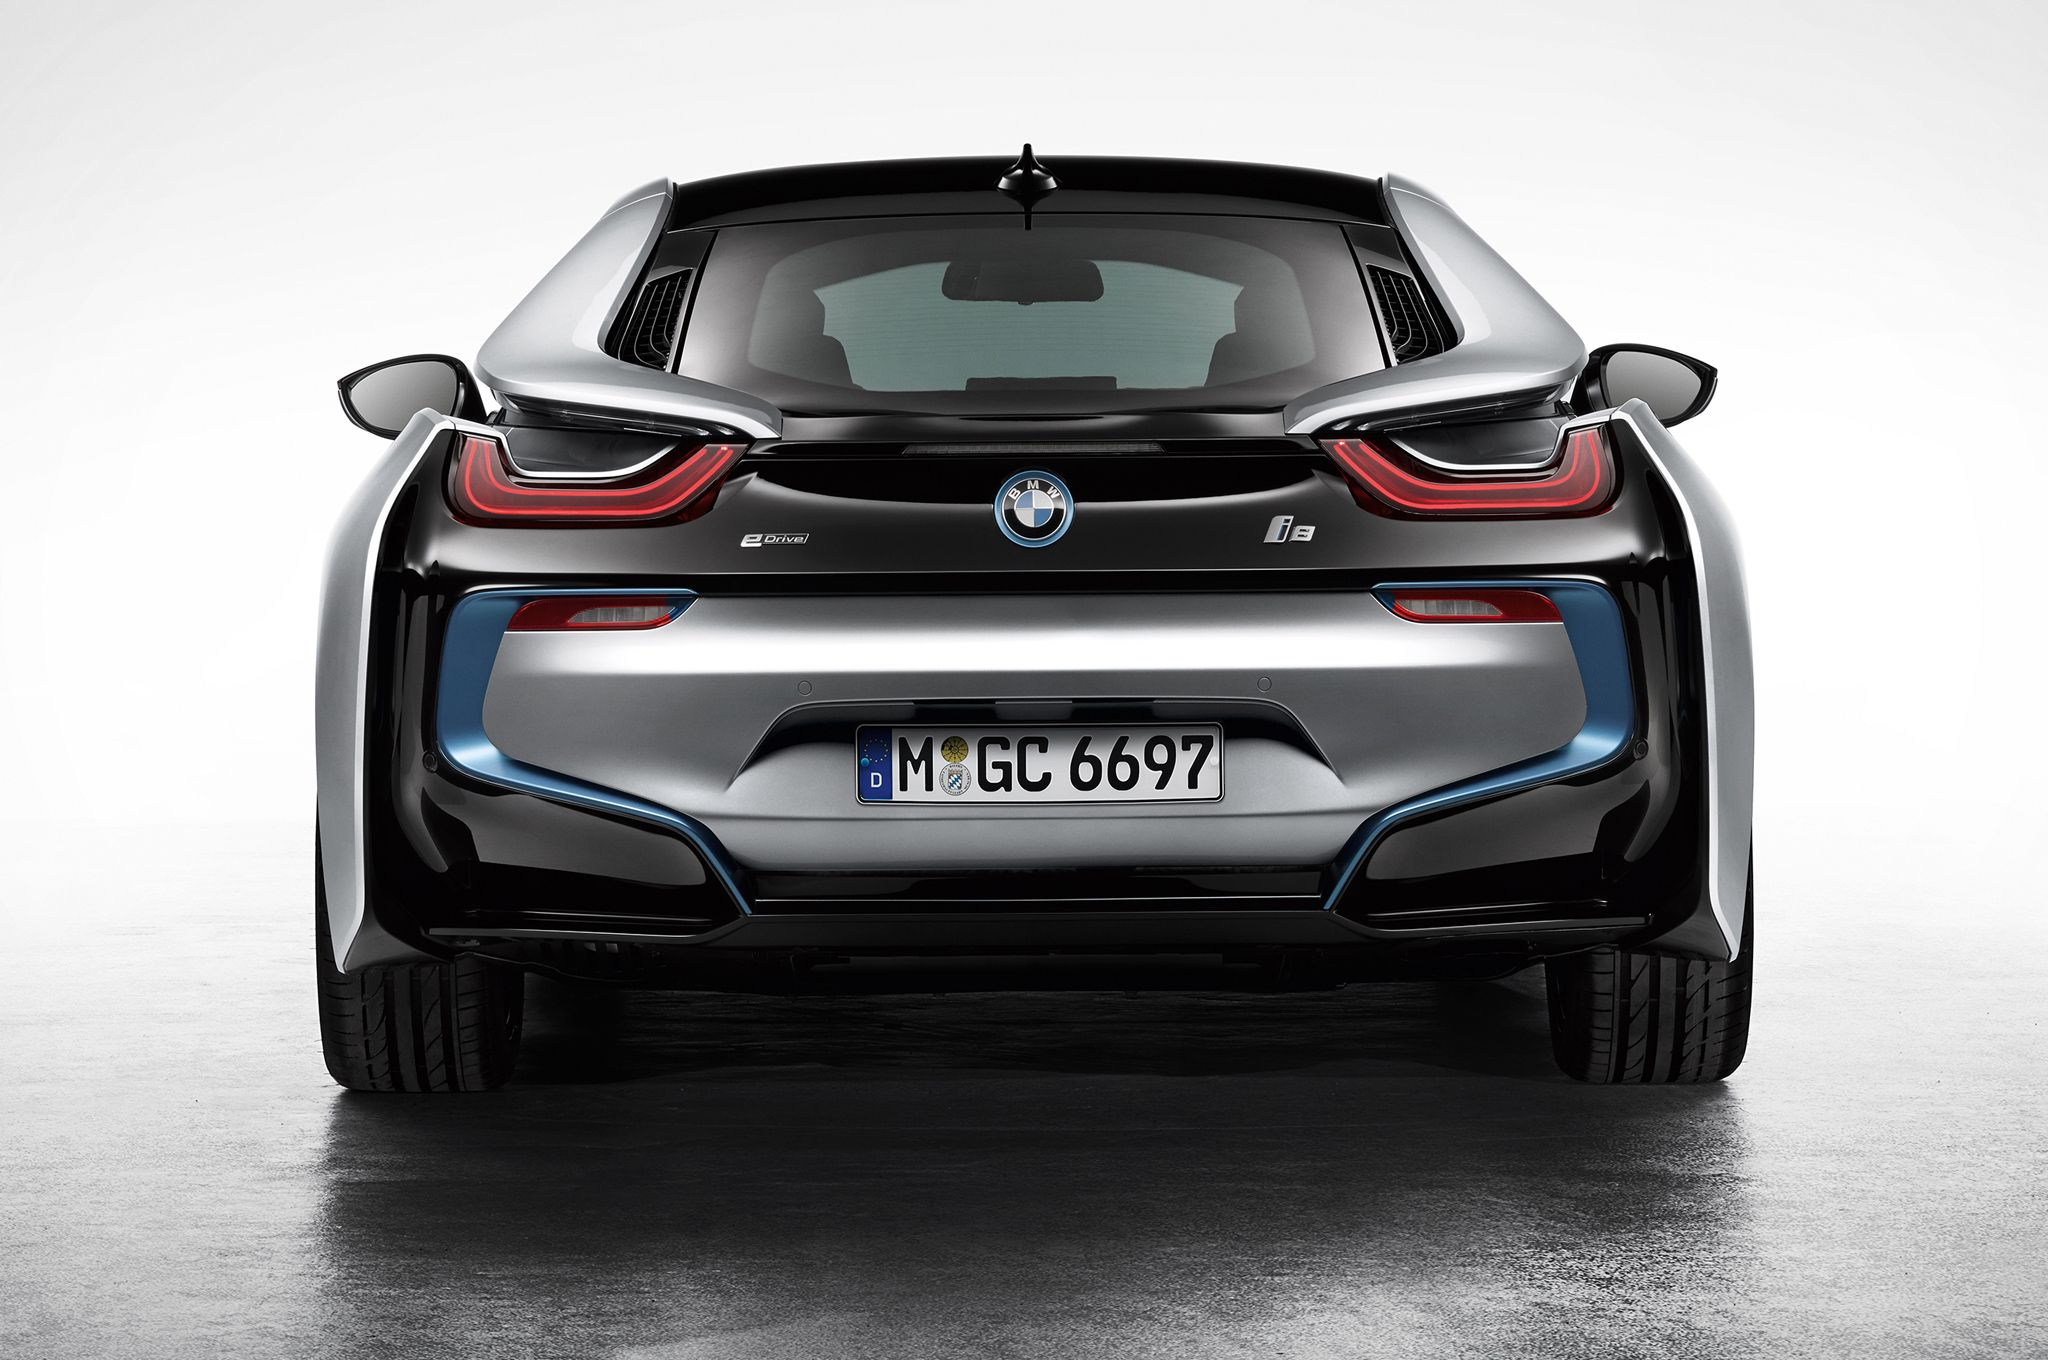 2014 bmw i8 hybrid rear view wallpaper bmw wallpaper bmw i8 bmw rh pinterest com